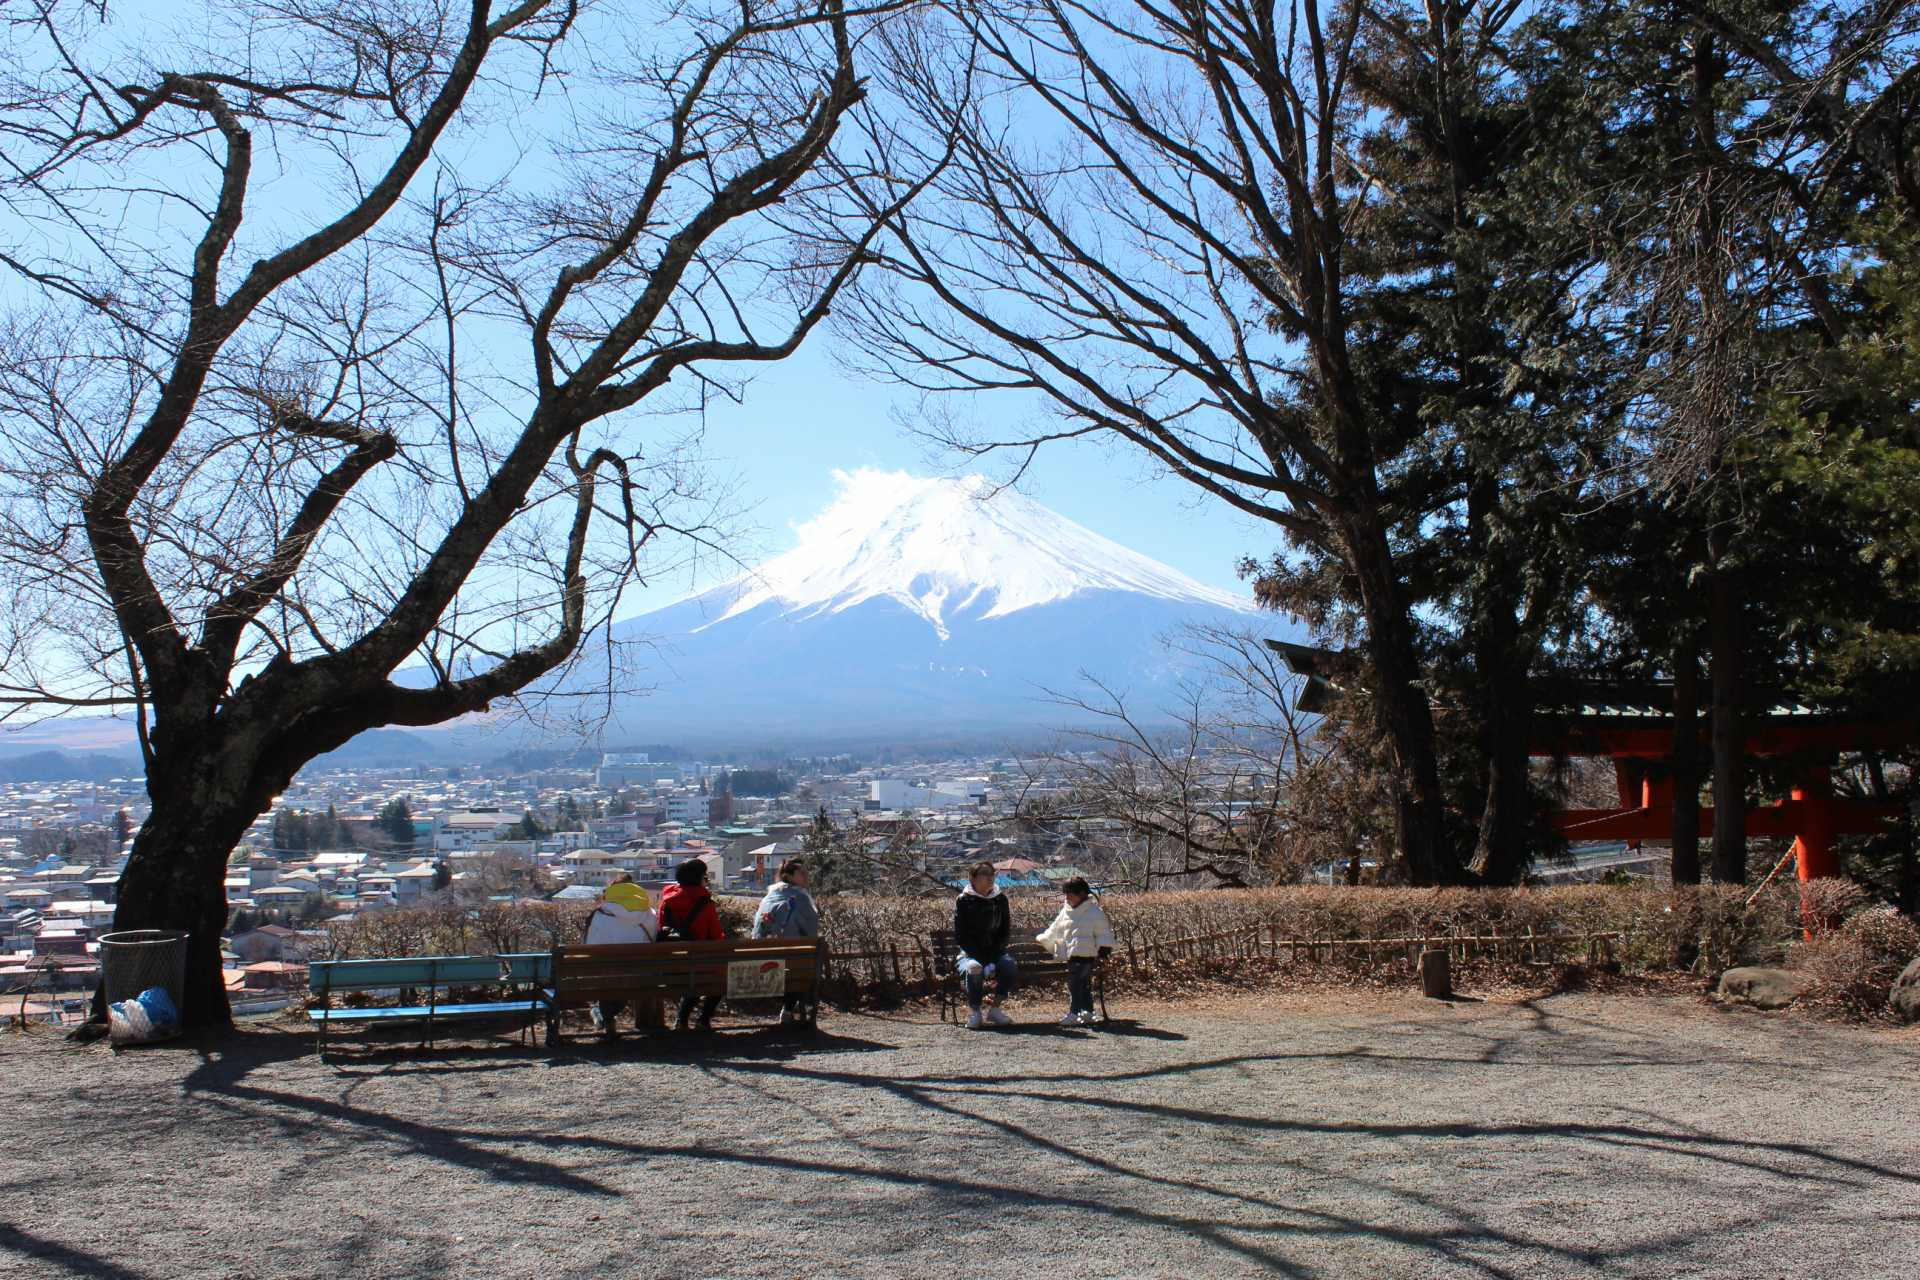 Take a Seat on a Bench and Enjoy the Beautiful View of Mt. Fuji